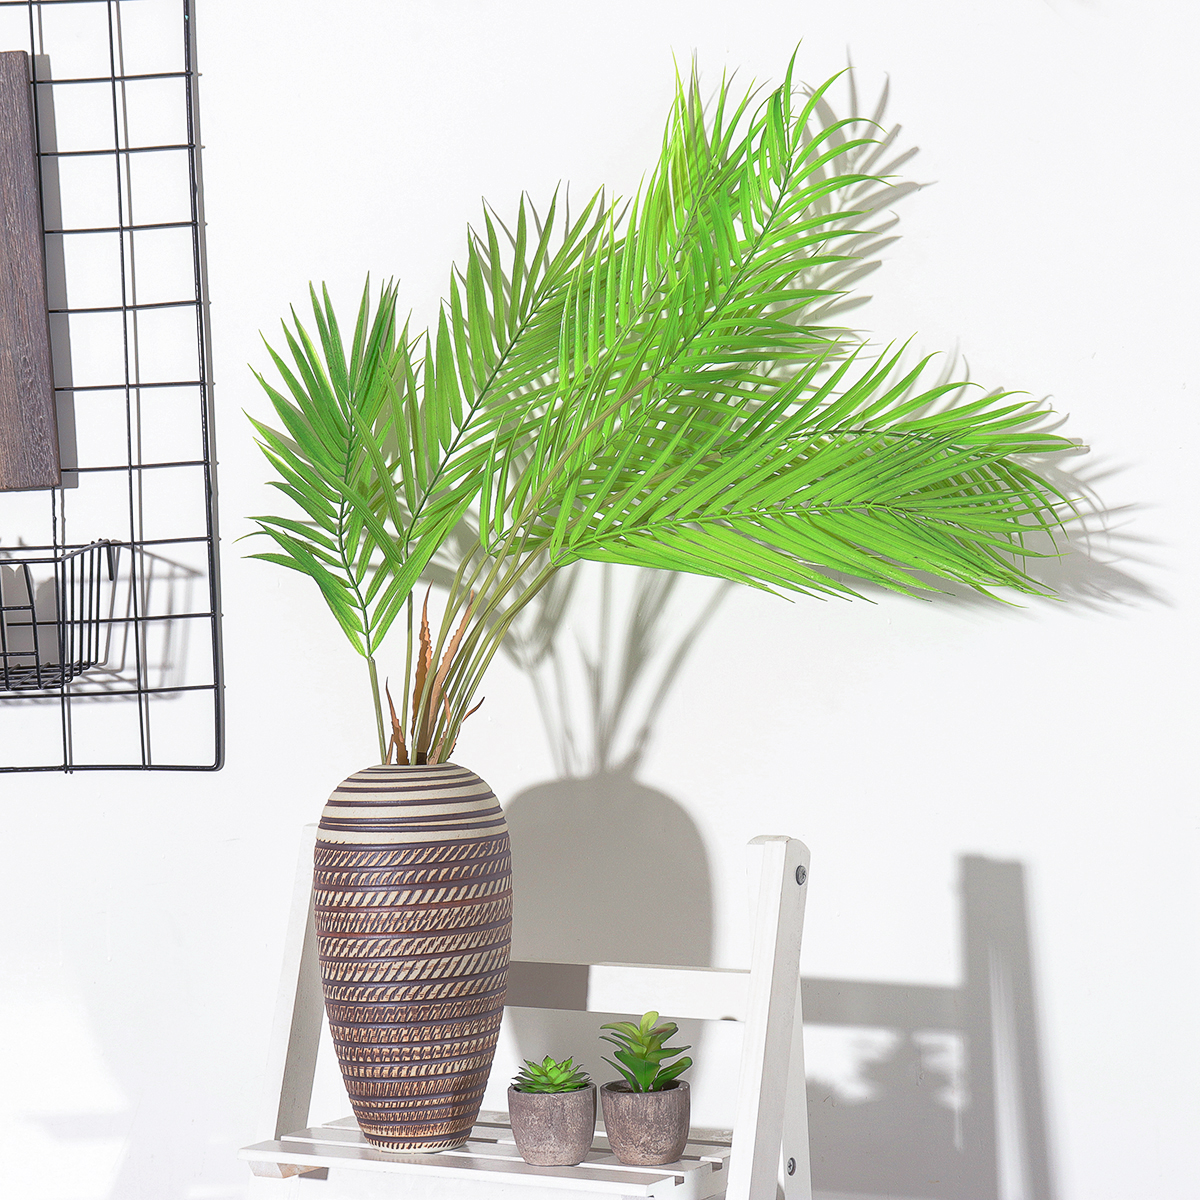 6 9 Branches Green Palm Leaves Plastic Fake Plant Artificial Leaf Home Adornment Decorations